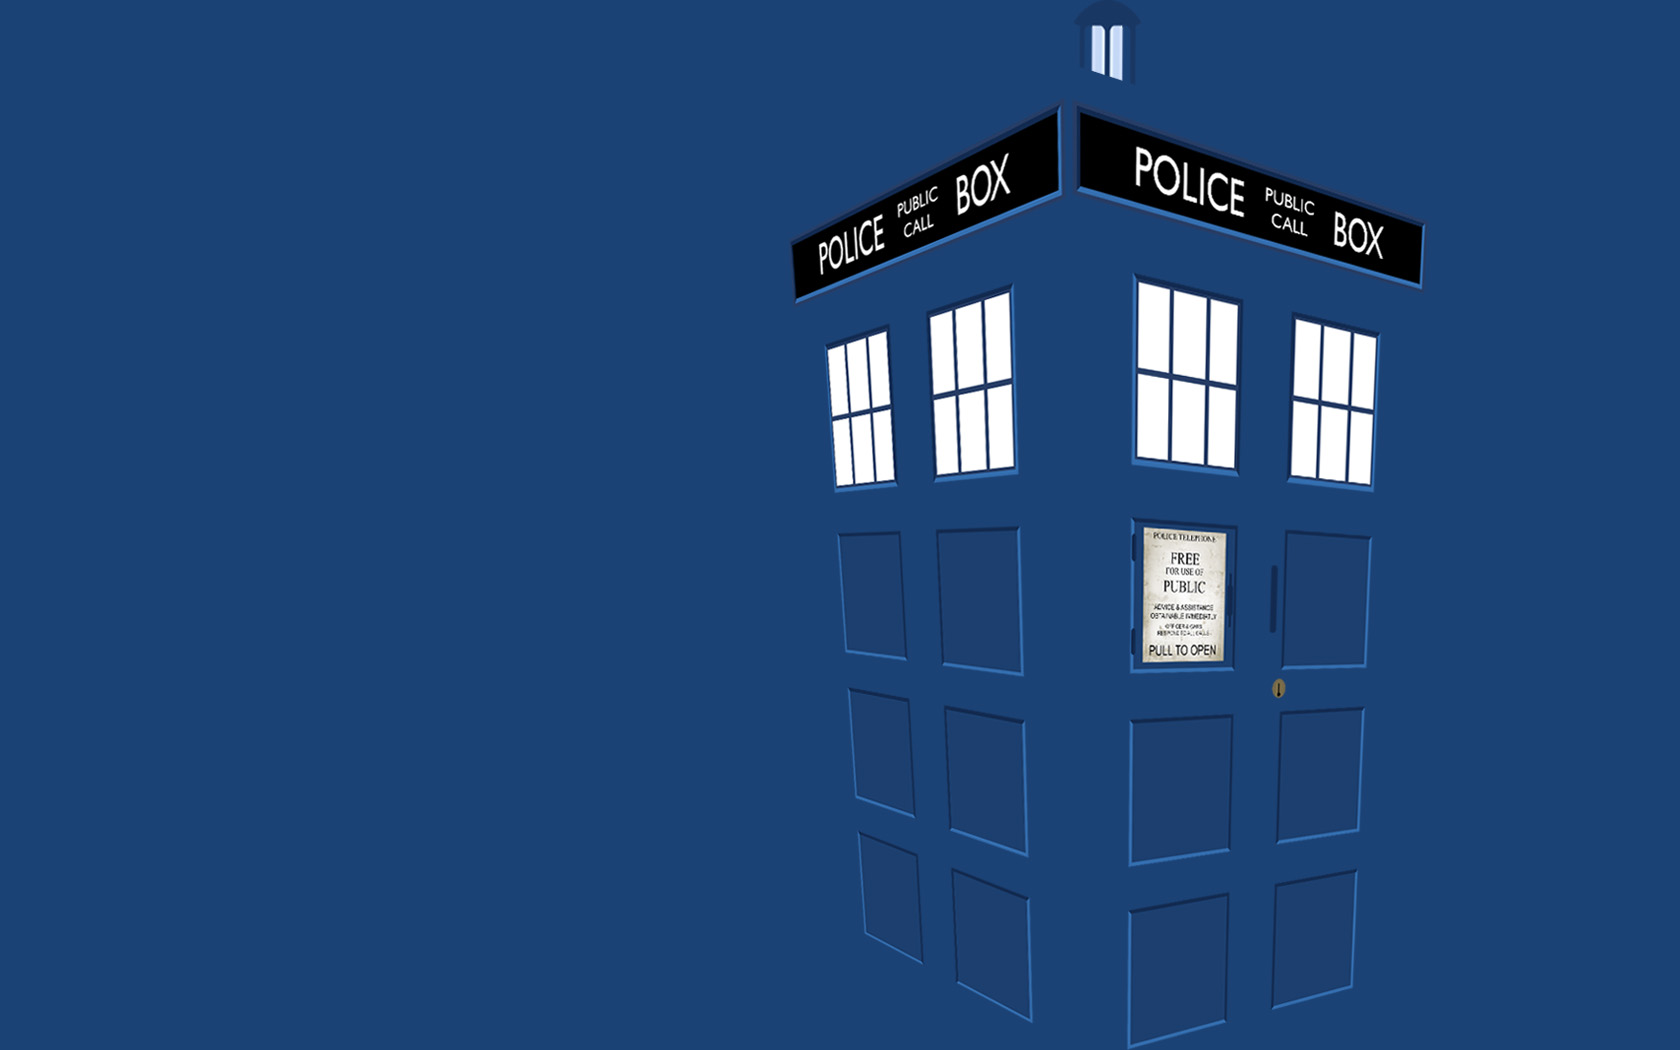 doctor who desktop wallpaper public call box | ololoshenka